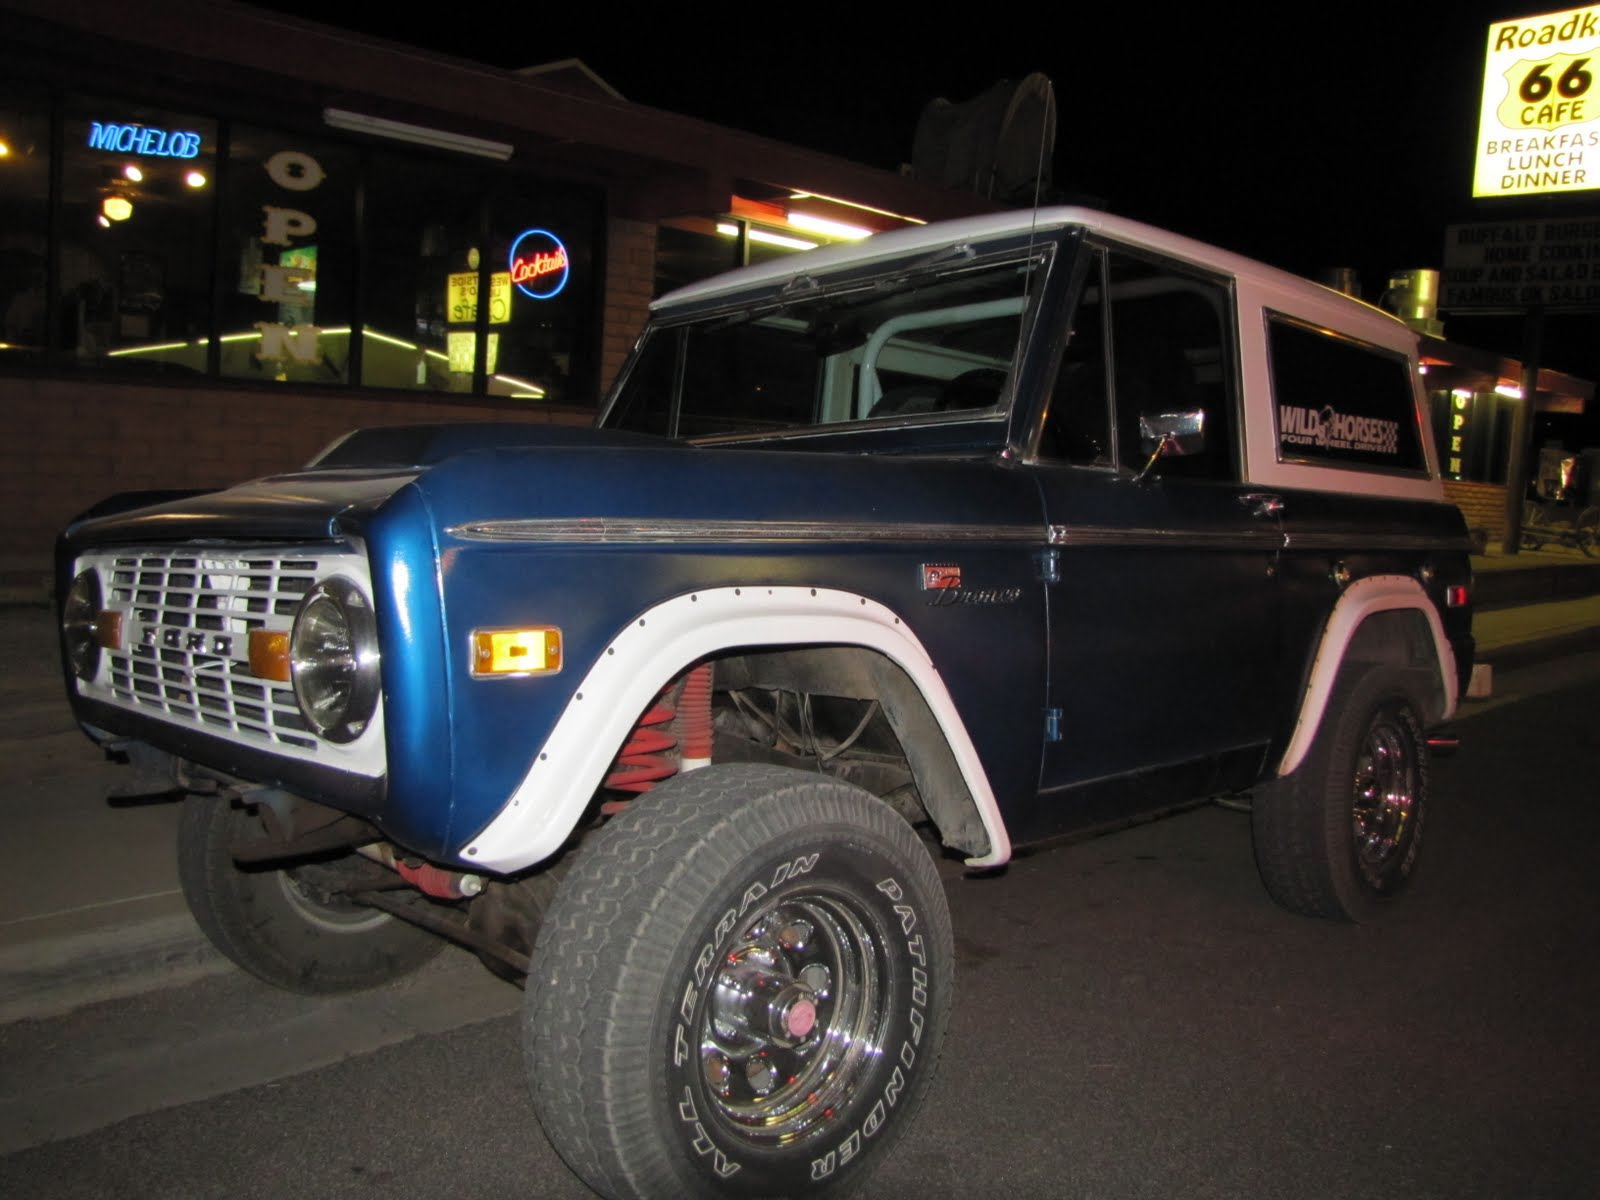 Route 66, Arizona, 1977 Ford Bronco